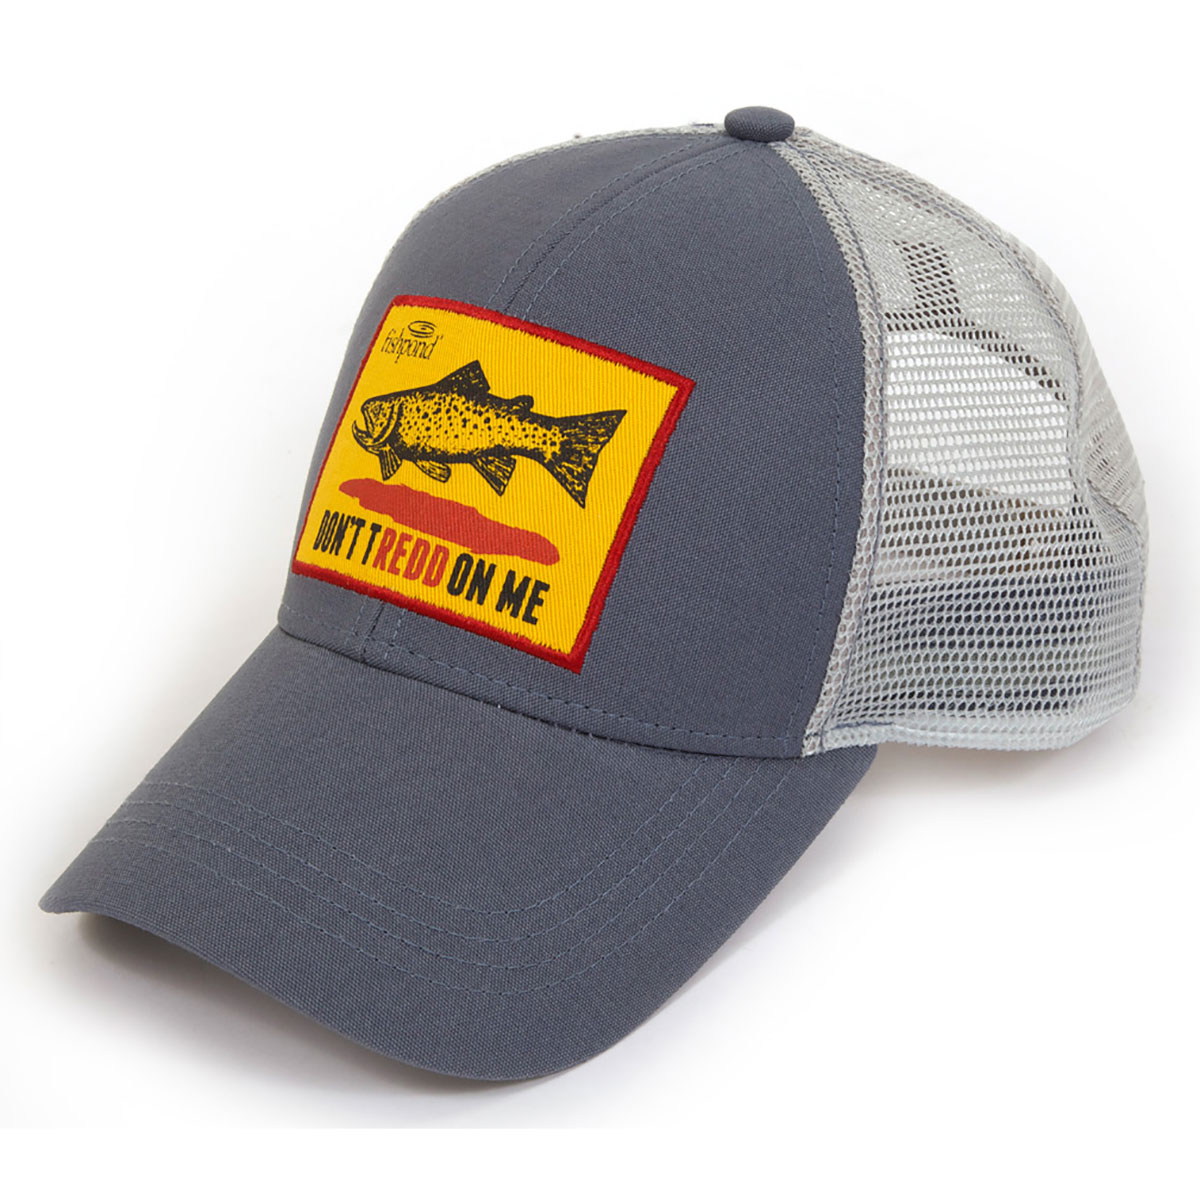 Fishpond don 39 t tredd logo adjustable hook and loop fly for Fly fishing cap